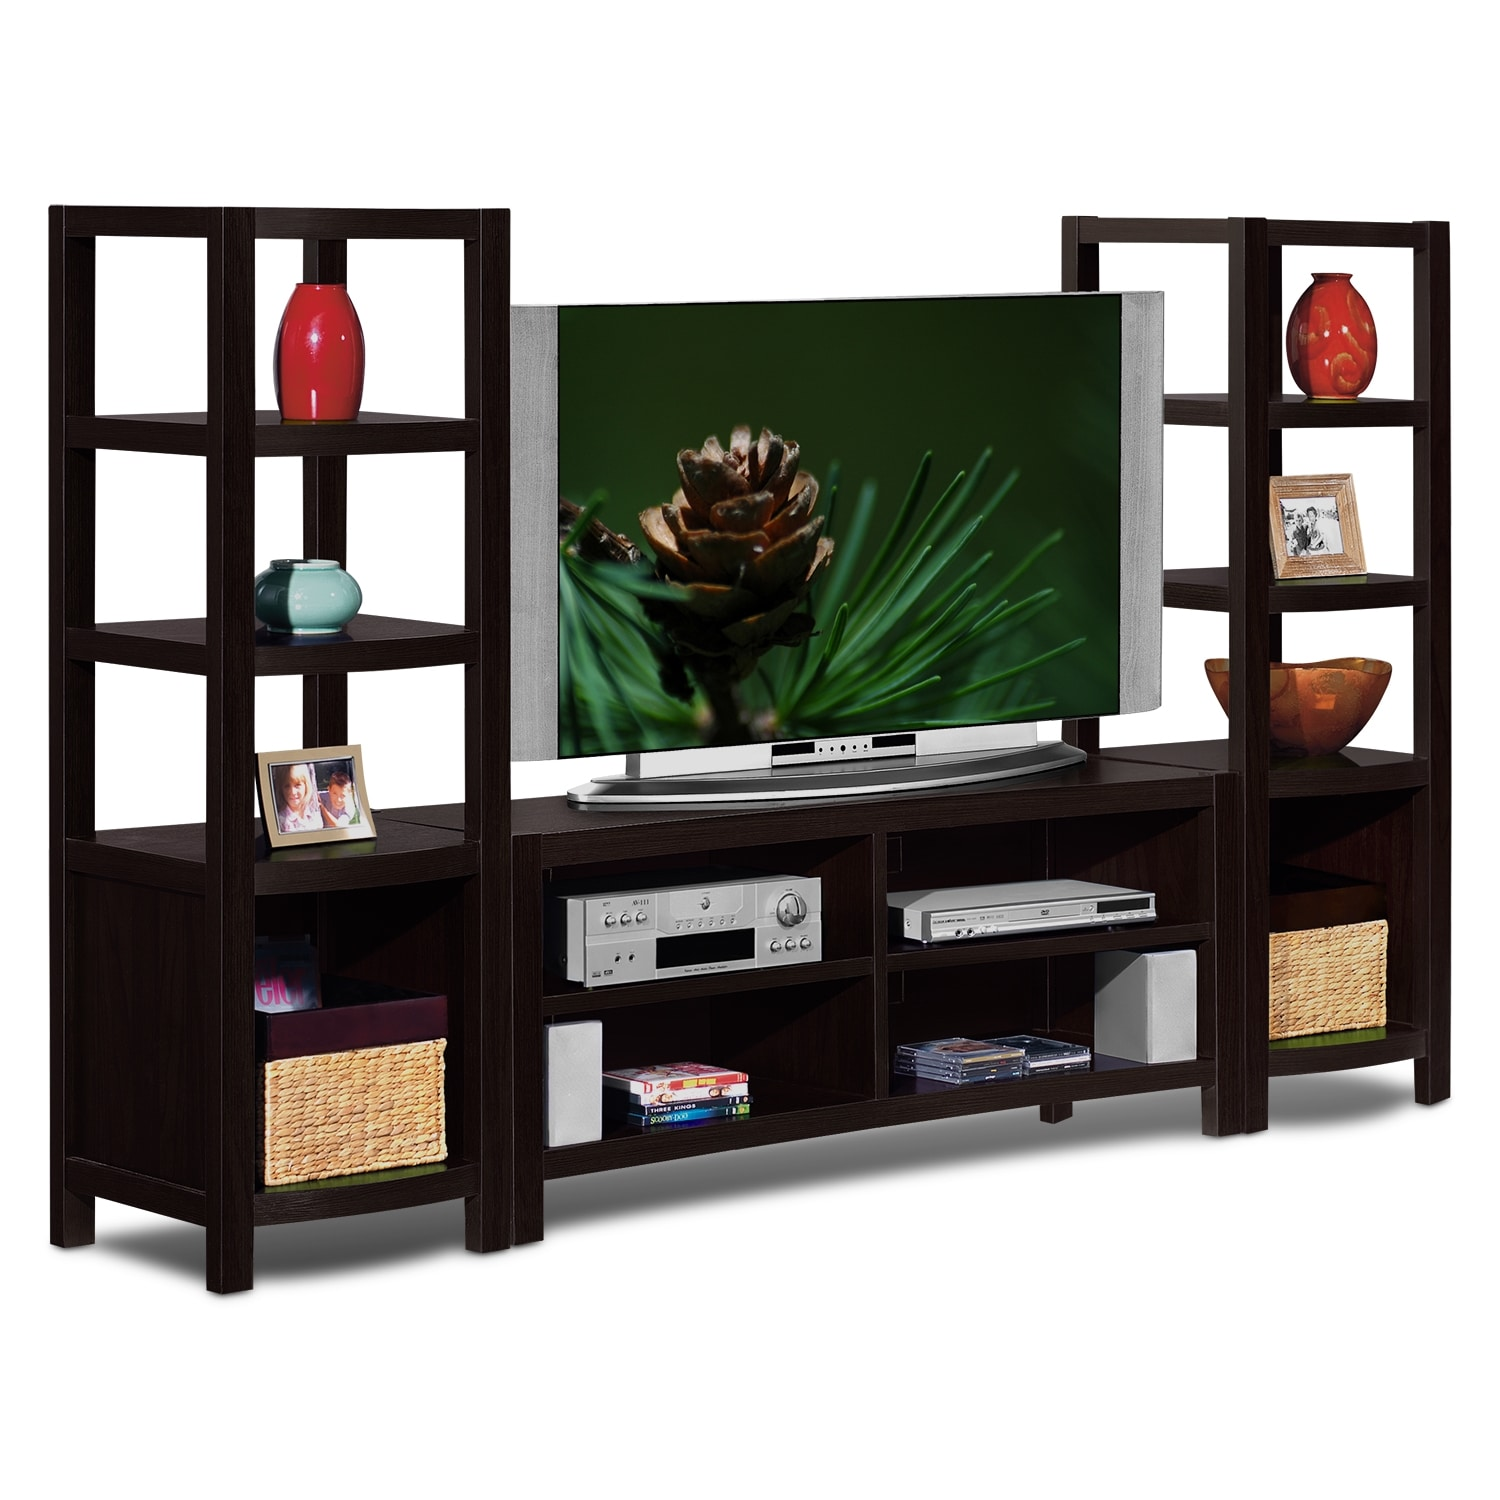 Entertainment Furniture - Townsend 3 Pc. Entertainment Wall Unit